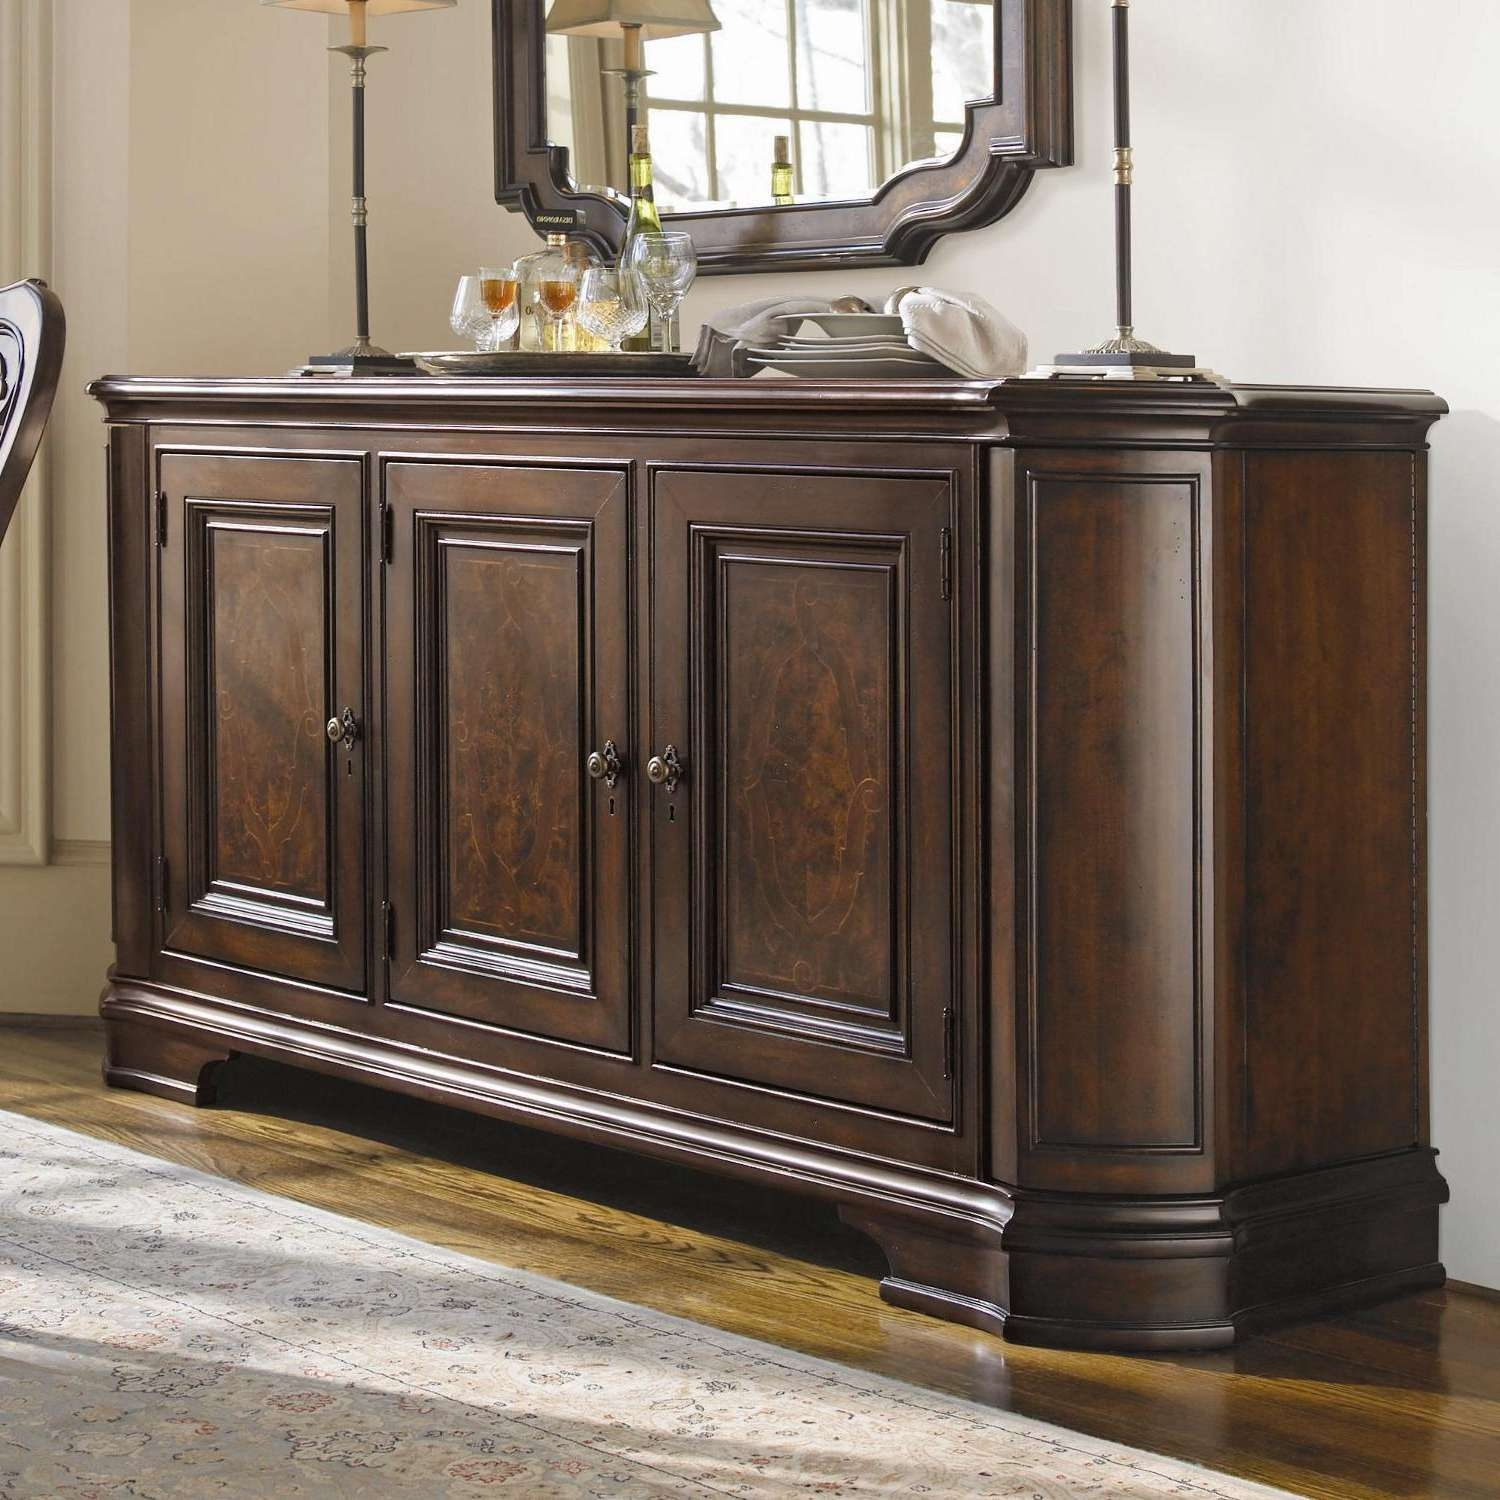 Vintage Sideboards And Buffets Furniture — New Decoration : The Pertaining To Sideboards And Buffets (View 19 of 20)